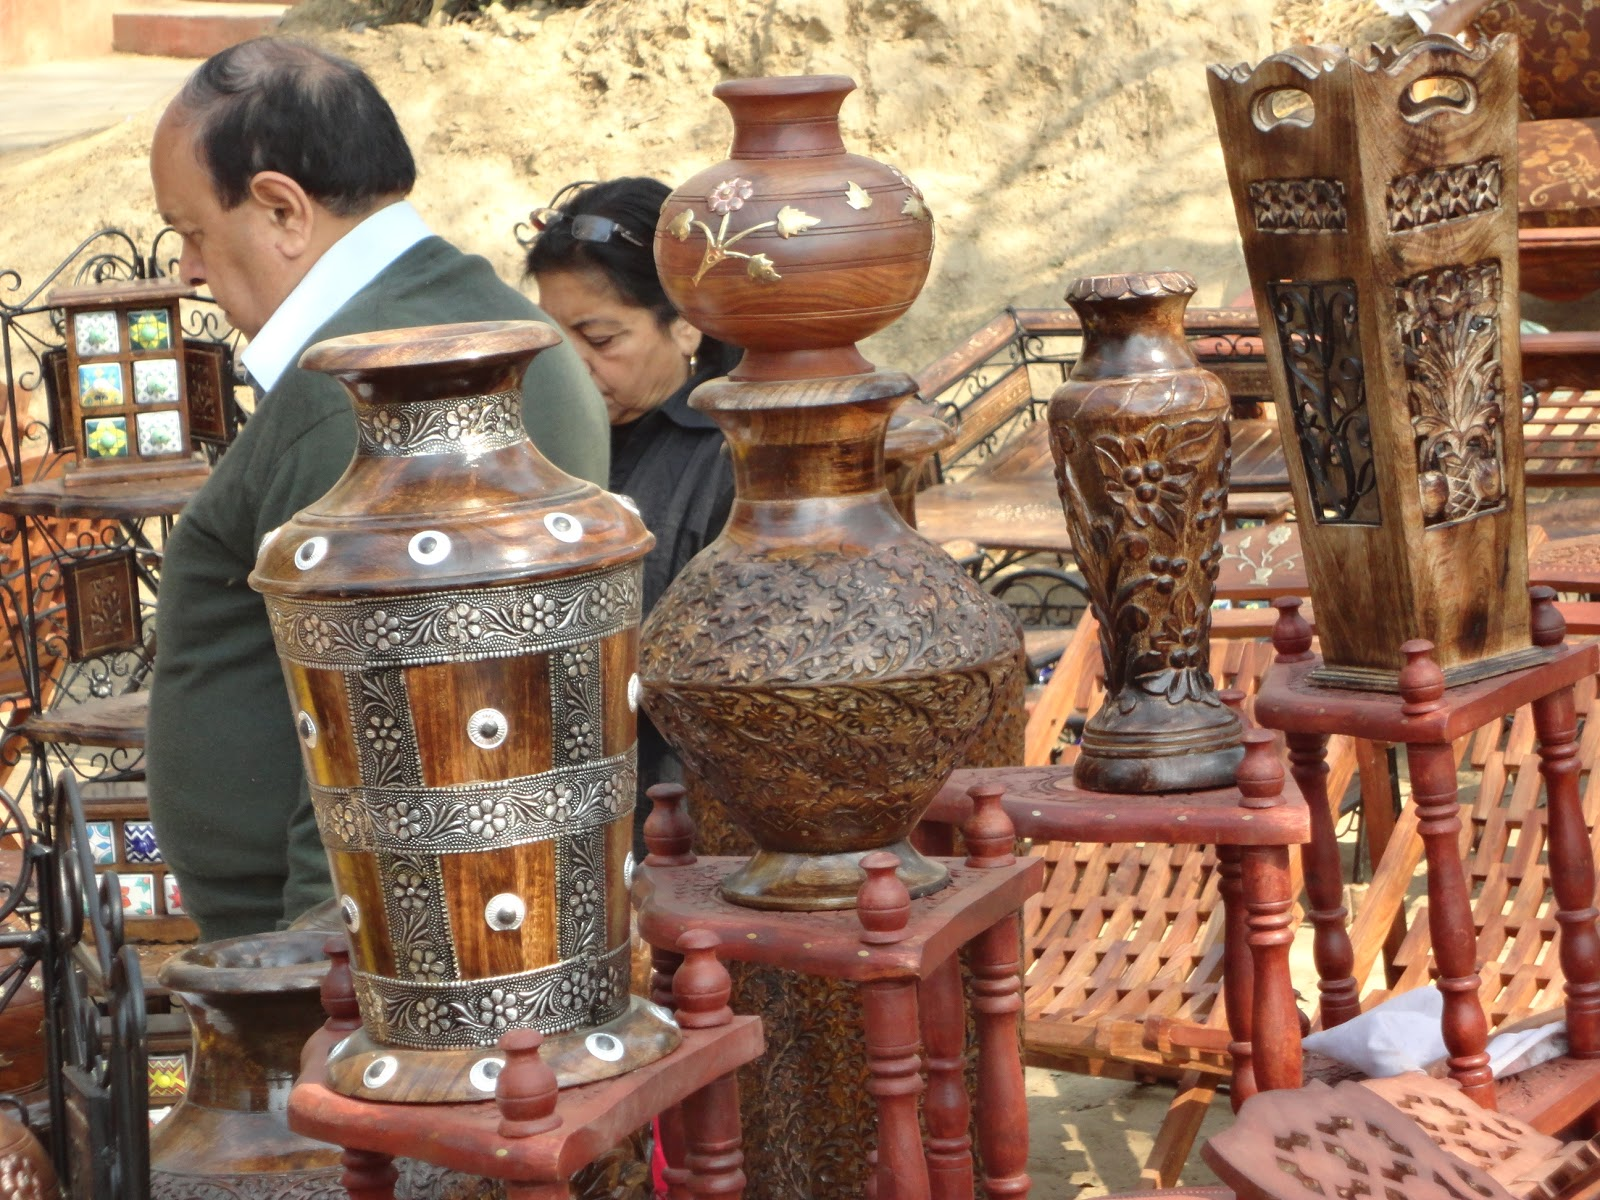 Woodwork Crafts at Surajkund Mela,India